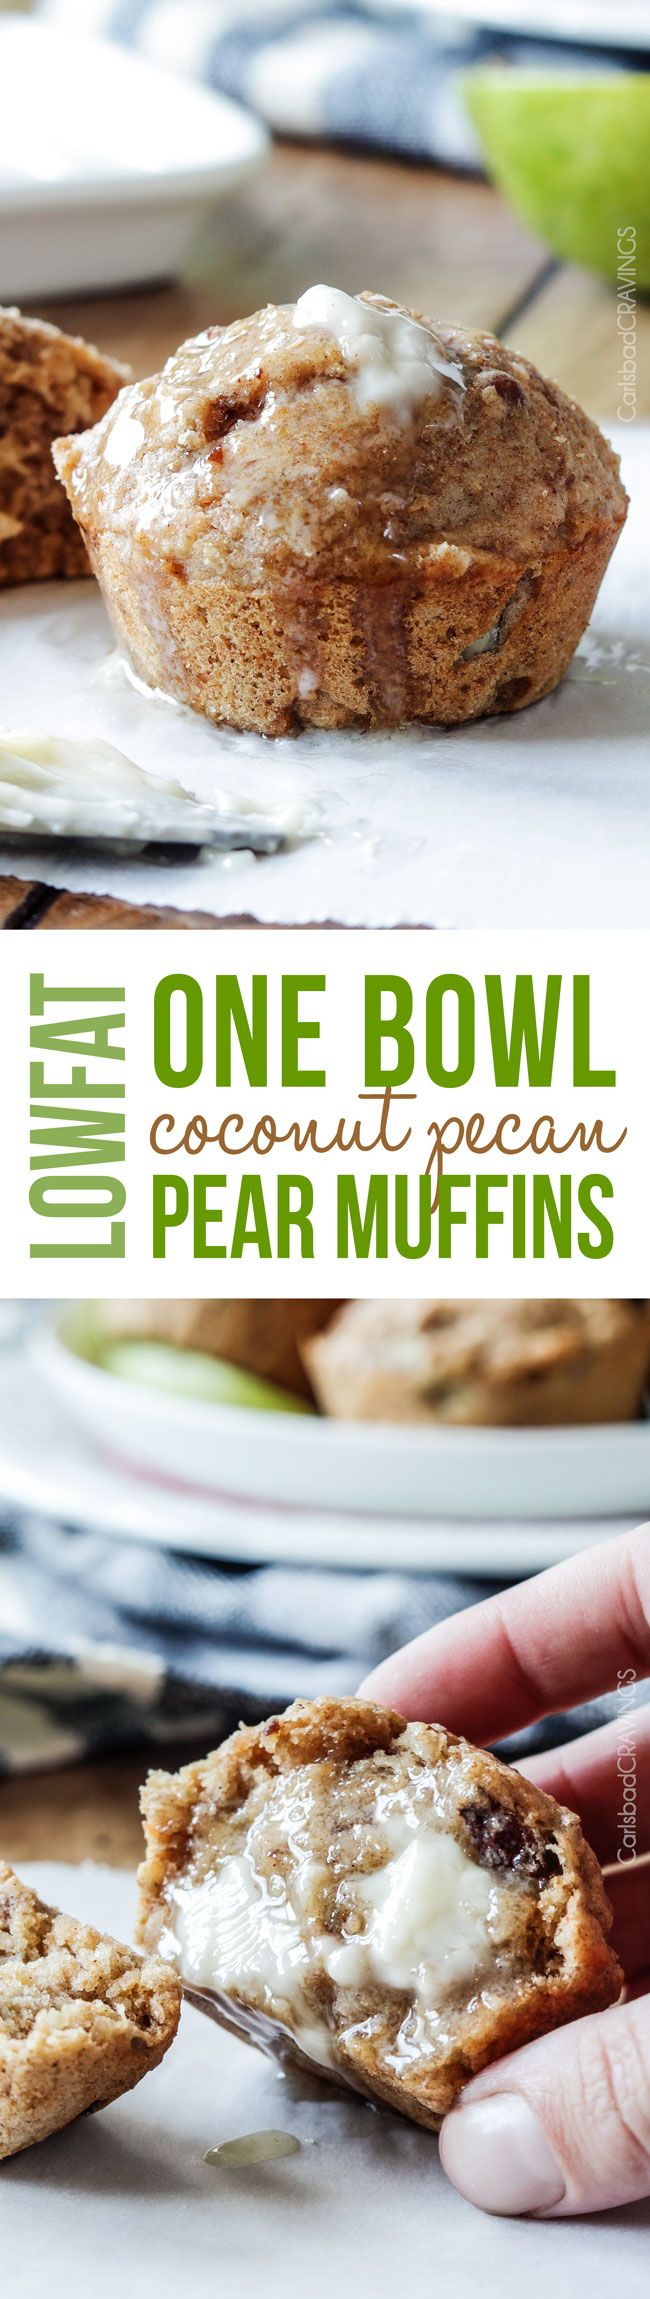 ONE BOWL quick and easy Lowfat Coconut Pecan Pear Muffins bursting with toasted coconut and pecans and super moist from pear puree – you won't believe they are guilt free!! via @carlsbadcraving